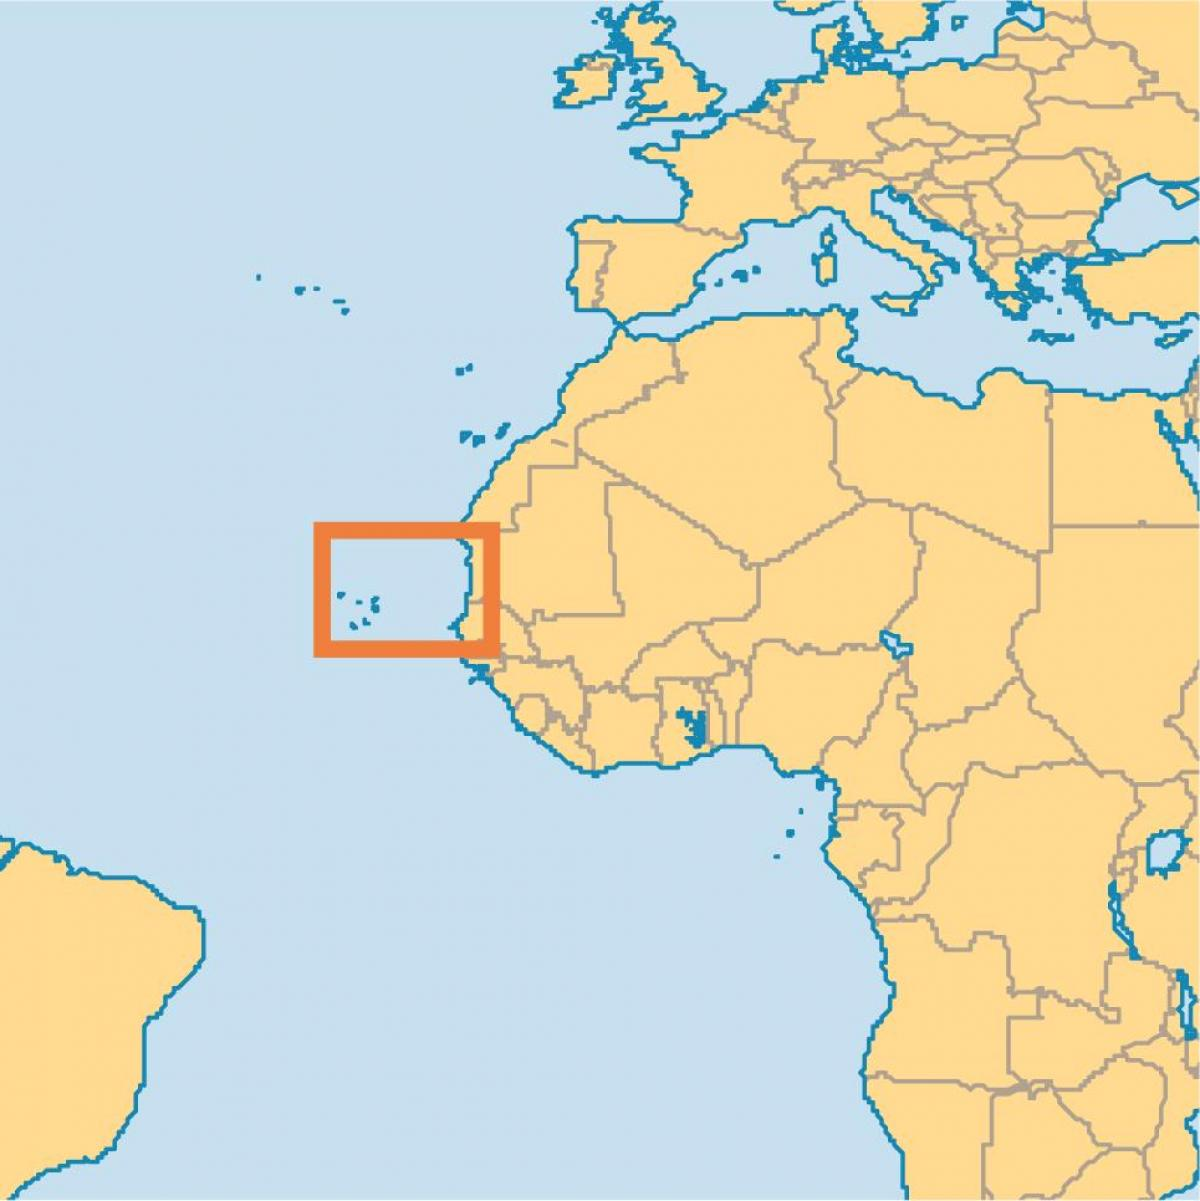 Islands Of The World Map.Cape Verde Islands World Map Show Cape Verde On World Map Western